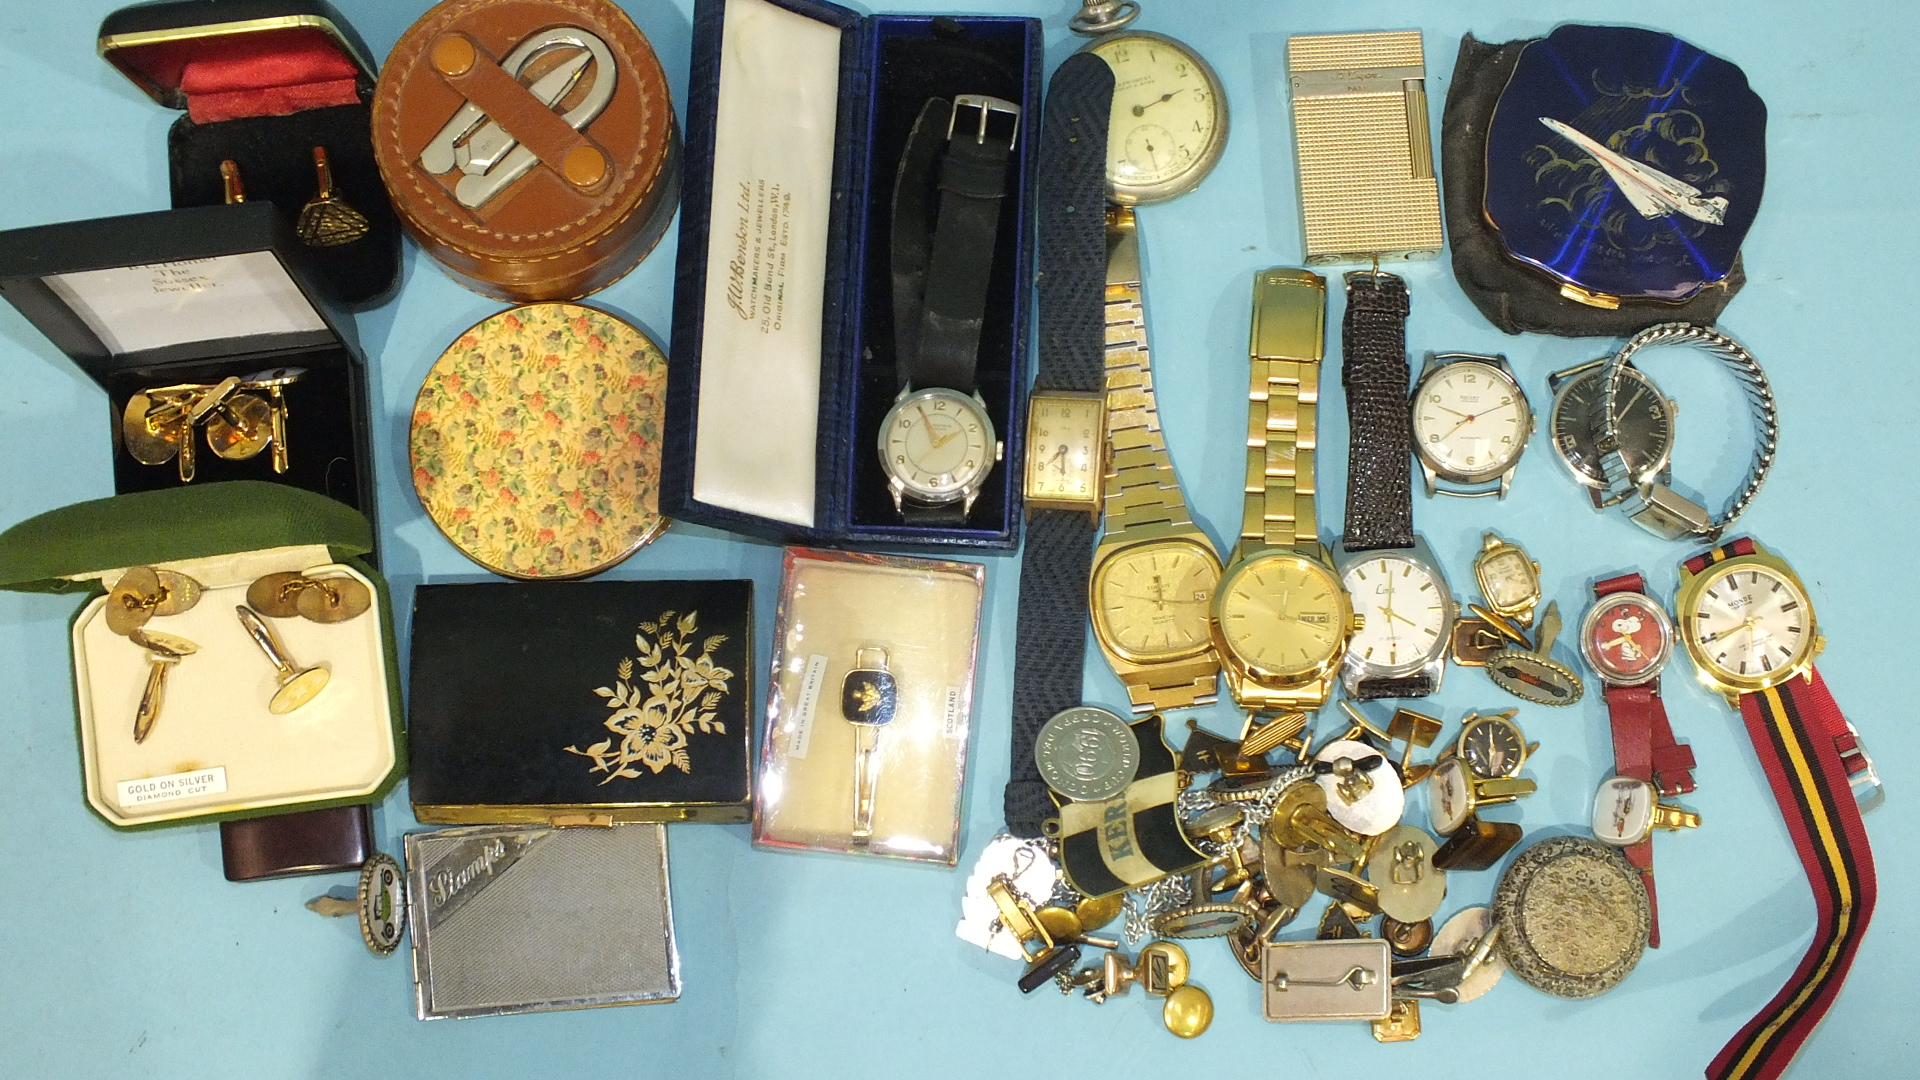 Lot 166 - A plated Dupont lighter and a quantity of wrist watches and cufflinks.